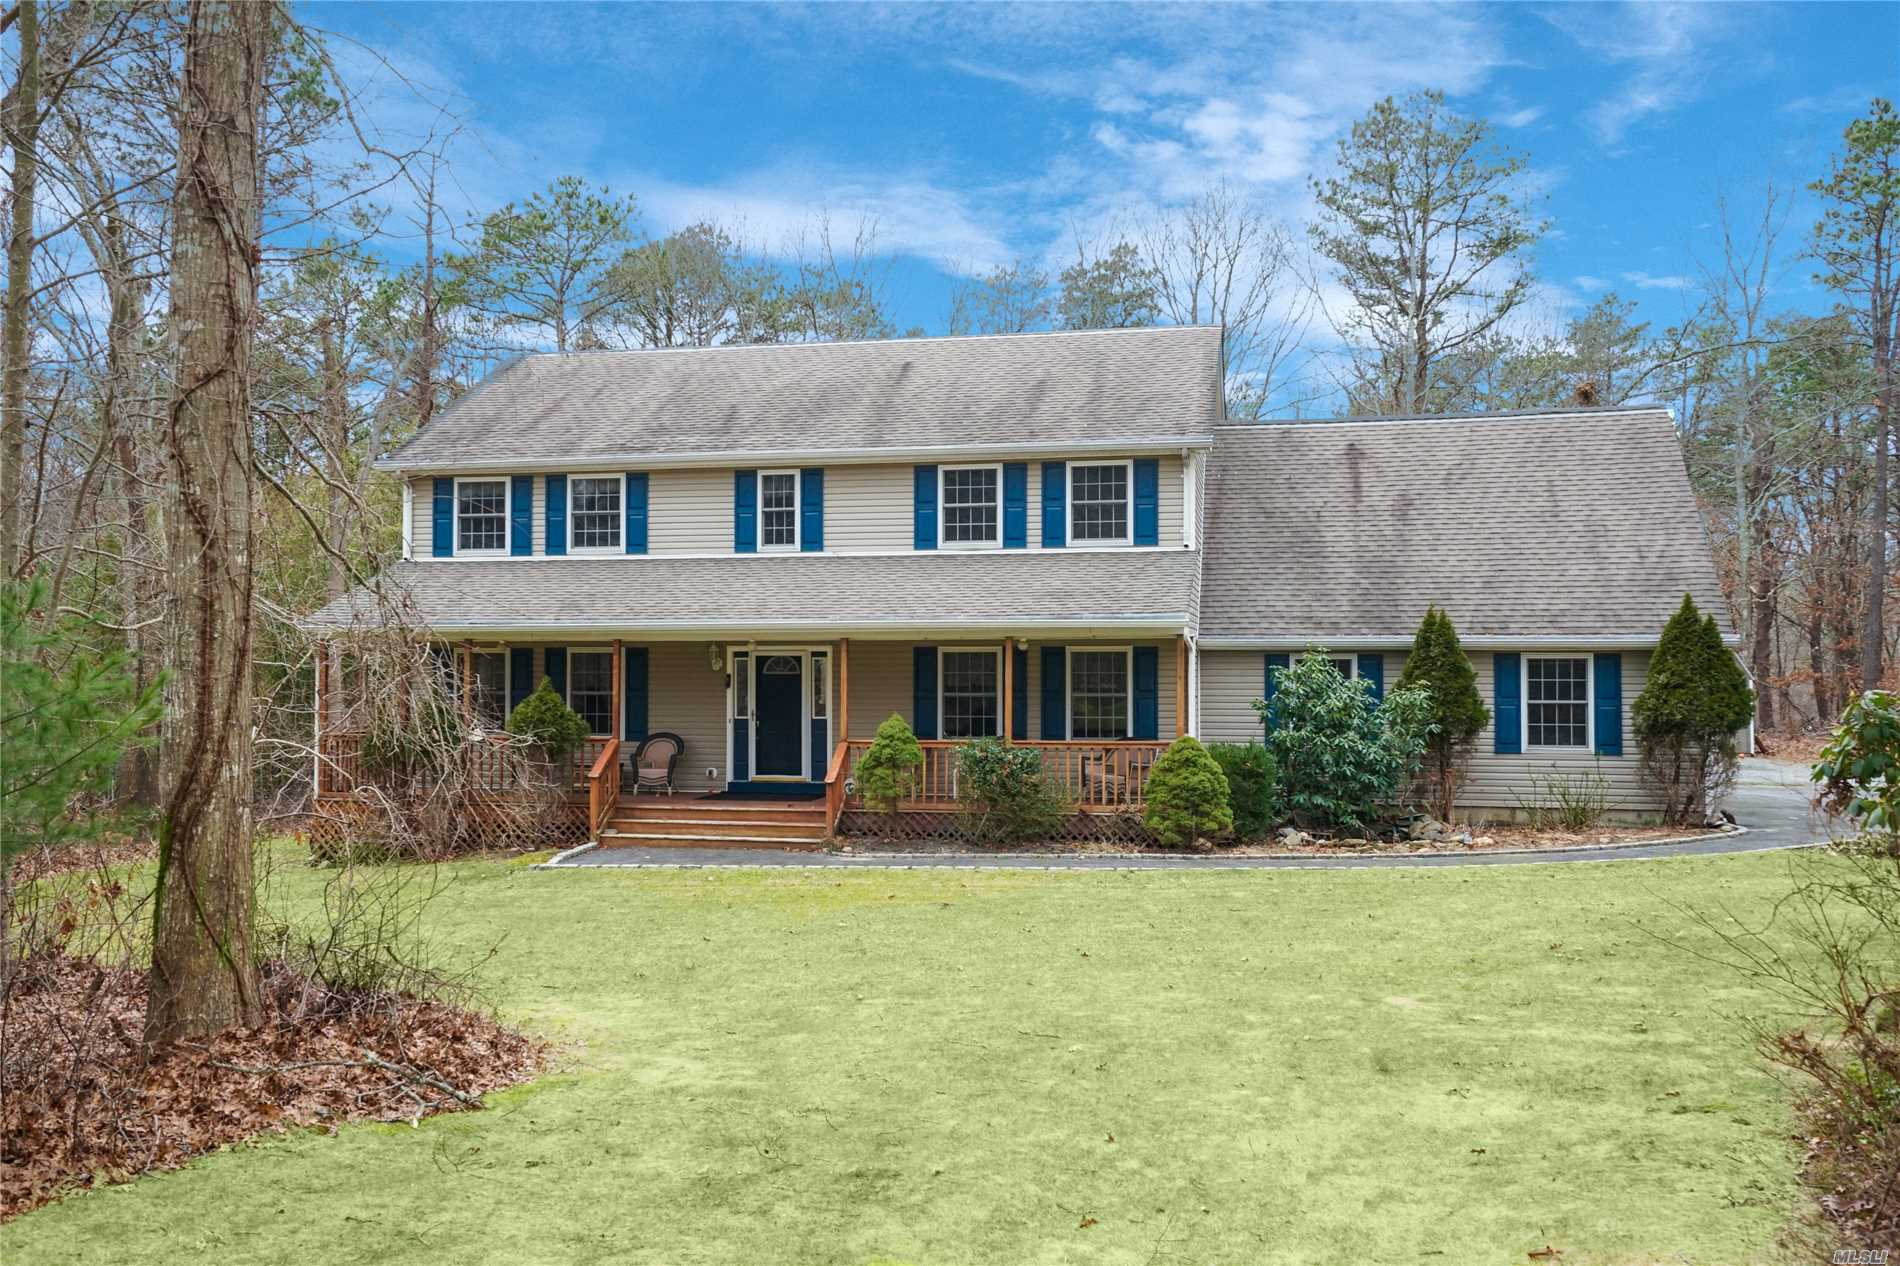 Enjoy Living On Long Island With Plenty Of Space. Spectacular Colonial In The Famed South Manor School District Situated On Over An Acre Of Land. Enjoy The Serenity Of A Cul-De-Sac And Having Your Street Surrounded By A Community Owned 19 Acre Private Preserve. This Home Features A Modern Updated Kitchen, A Formal Living Room & Dining Room, Den With Hardwood Floors And Large Bedrooms. There Is A Bonus Guest Room Ready For All Of Your Visitors. Room For A Horse Stable.